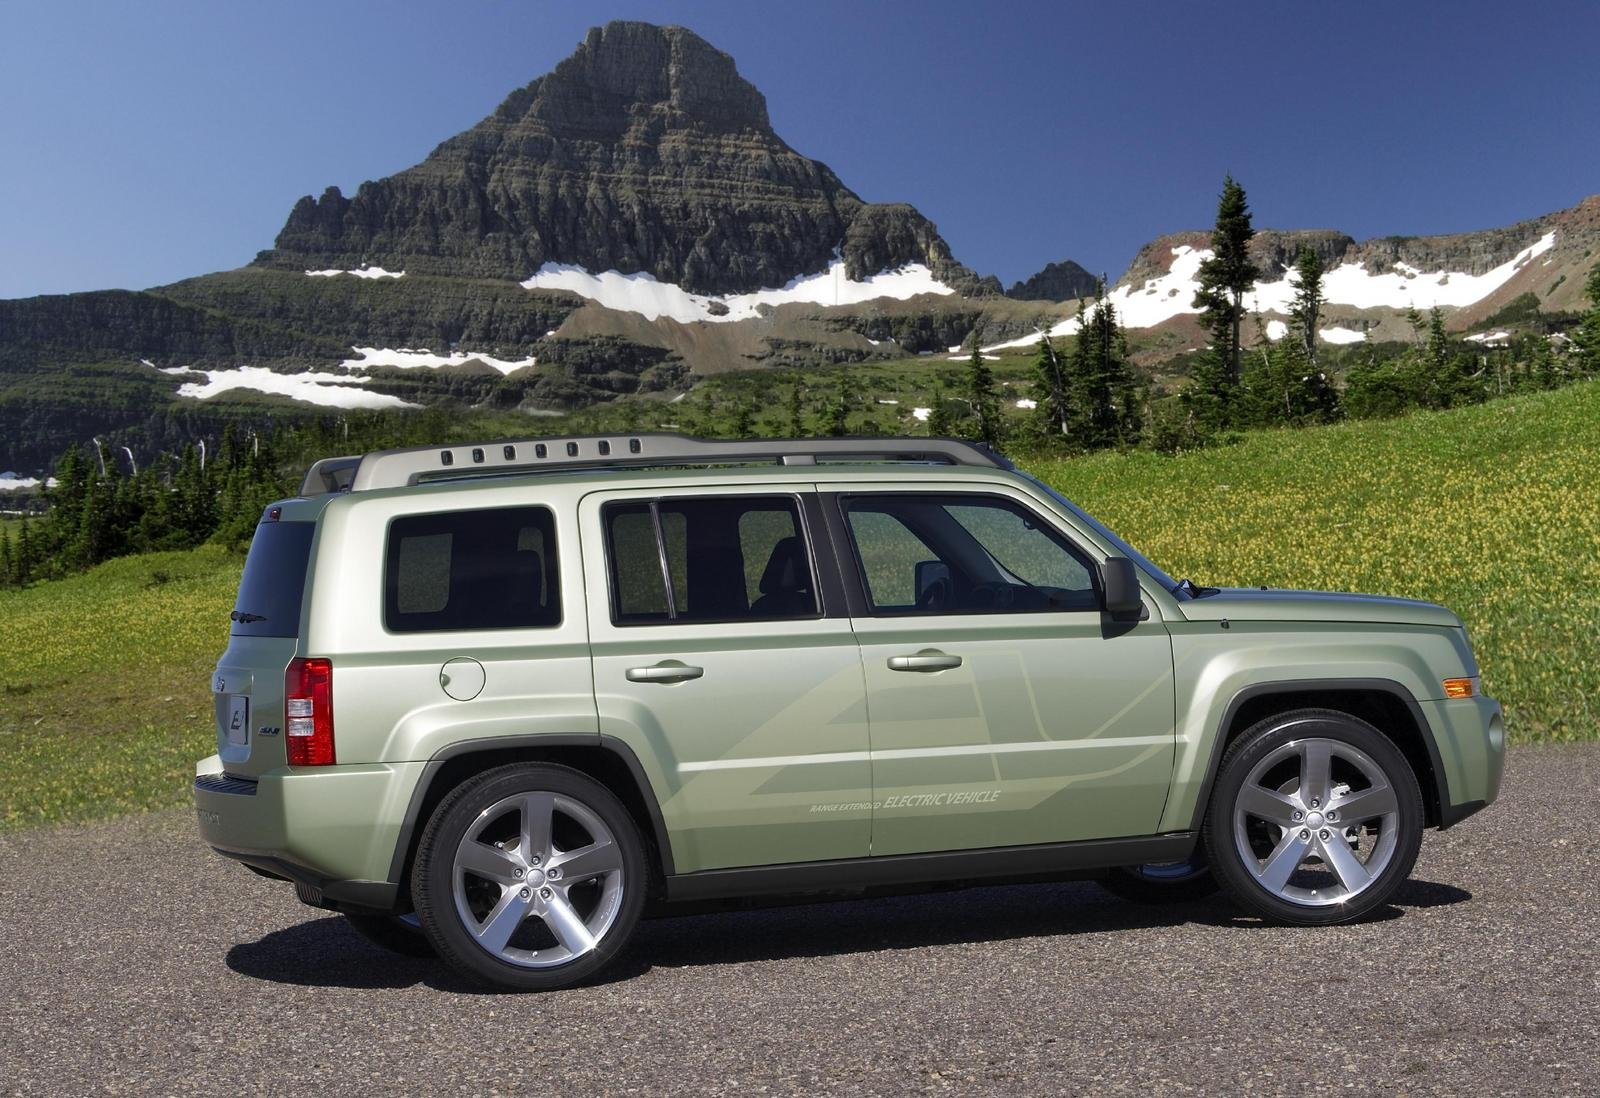 2009 jeep patriot ev picture 280382 car review top speed. Black Bedroom Furniture Sets. Home Design Ideas